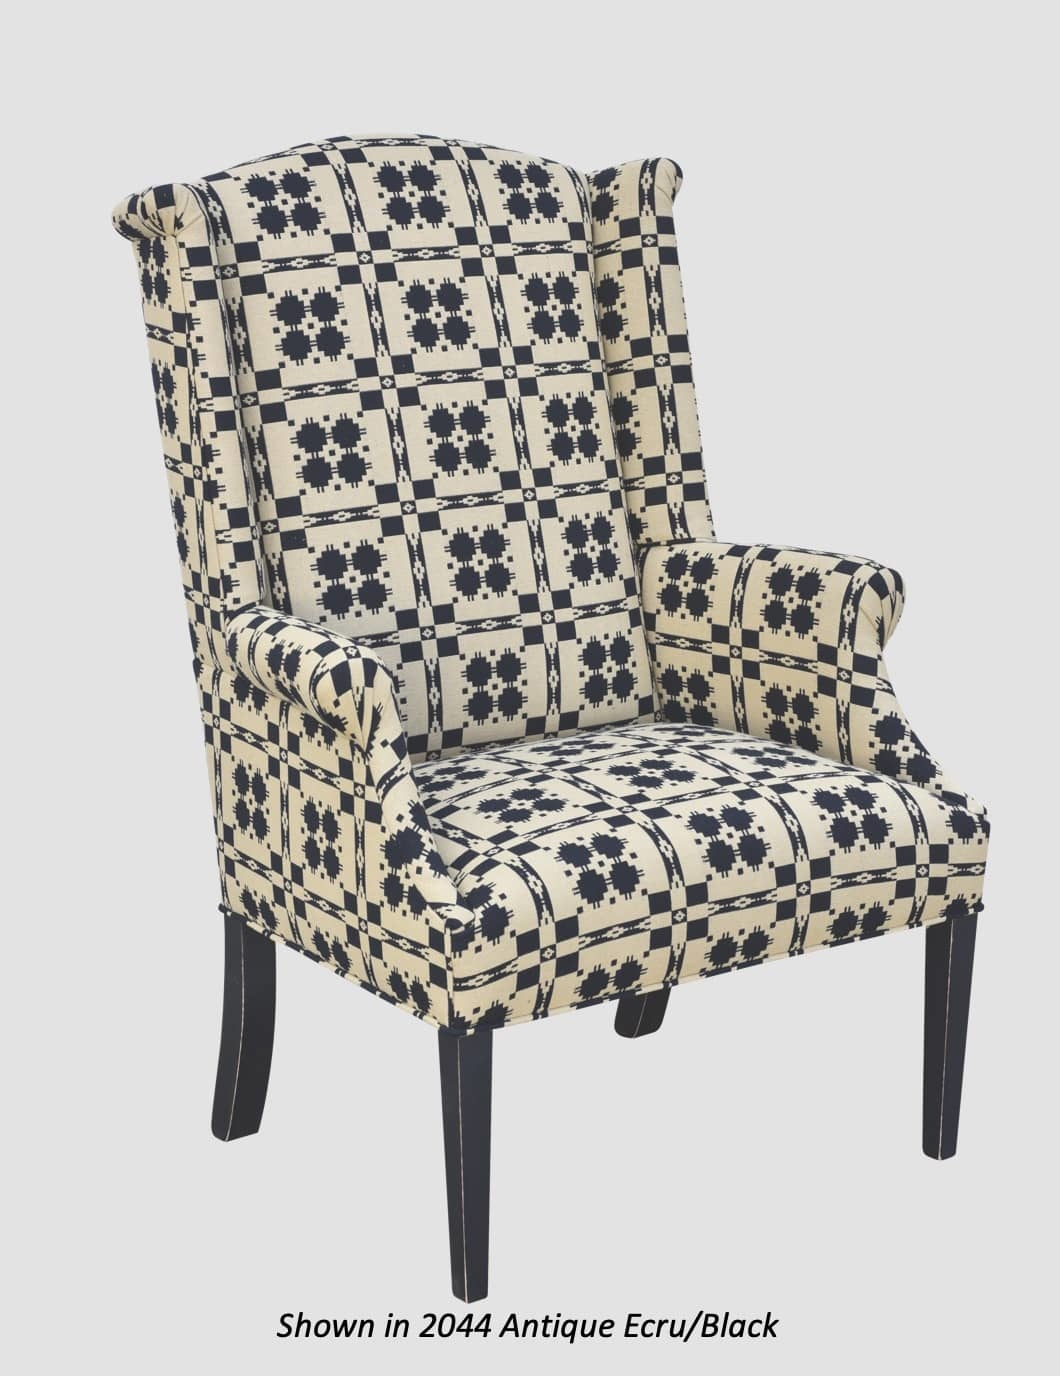 Town & Country Furnishings Sarah Reaver Master Chair